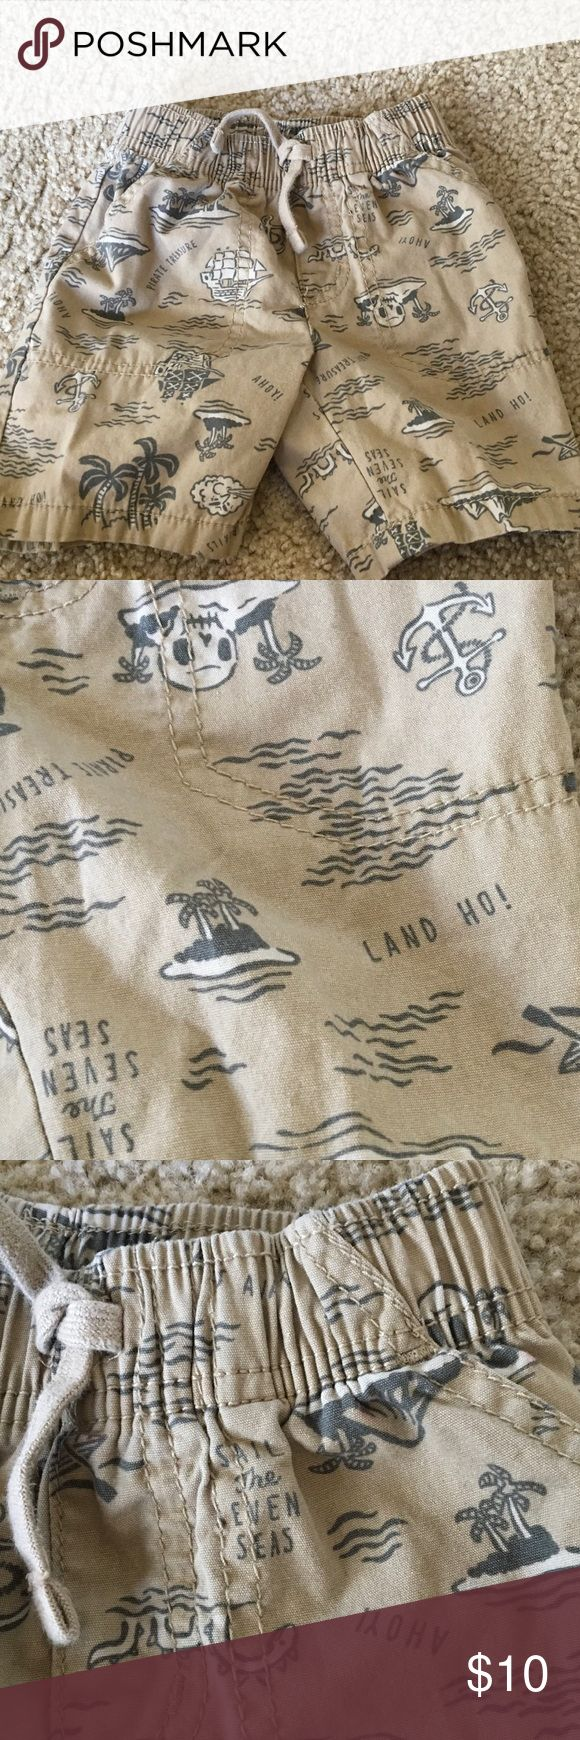 """JUMPING BEAN 💯% Cotton KHAKI Shorts SEA LIFE 2T Sweet KHaki shorts w/ drawstring waist that is also elasticized. 2 slash side Pockets, fake fly front. AHOY! LAND HO! PIRATE TREASURES ! Palm trees, islands anchors. 2T...18"""" fully around unstretched  can stretch more.....6 3/4"""" RISE....10 1/2"""" LENGTH. Gr8 🏝🏕🏝 JUMPING BEAN Bottoms Shorts"""